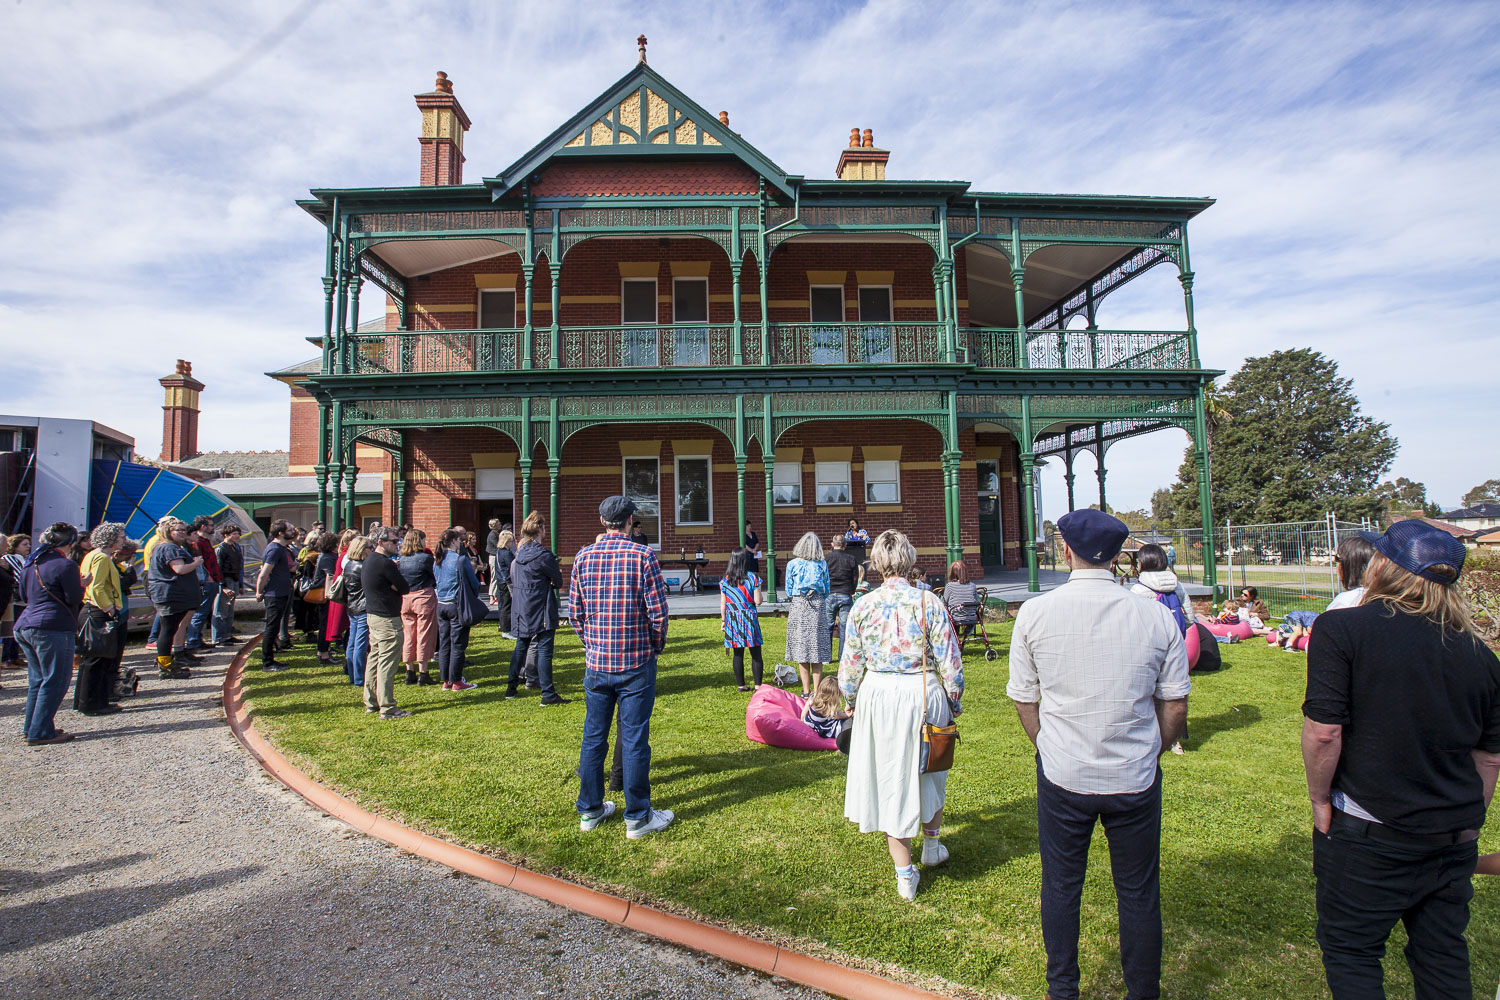 ND_Bundoora Homestead_Event_044_180922.jpg